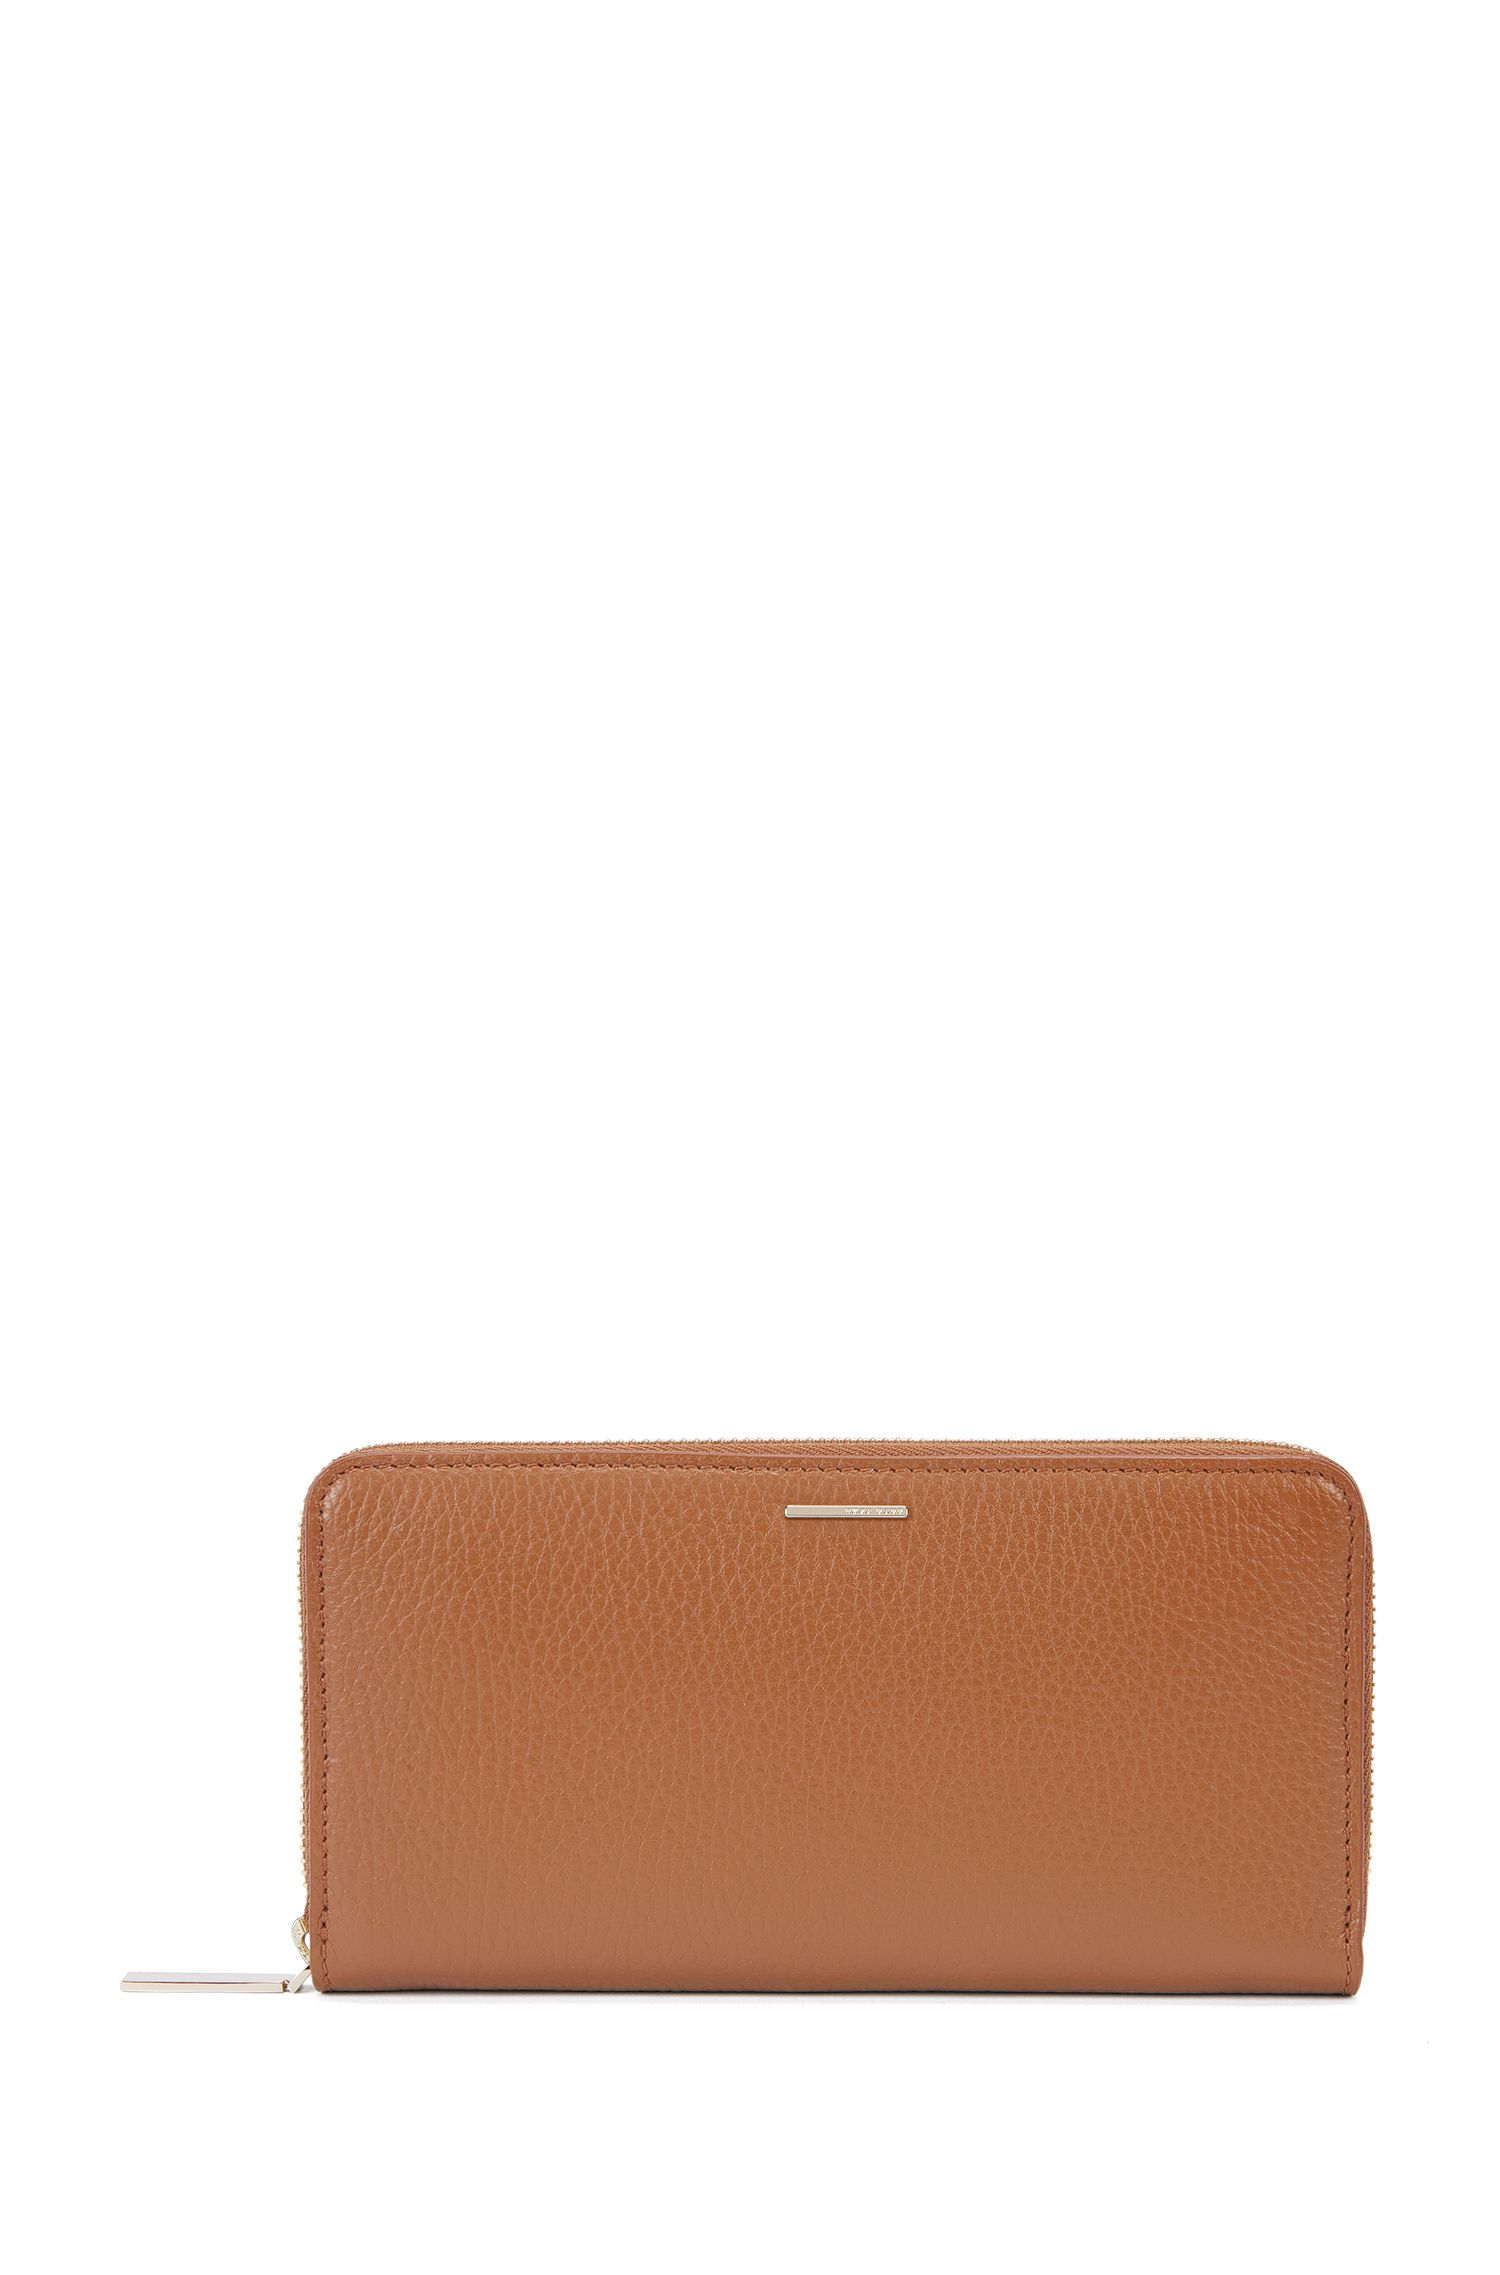 BOSS Luxury Staple wallet in grained leather